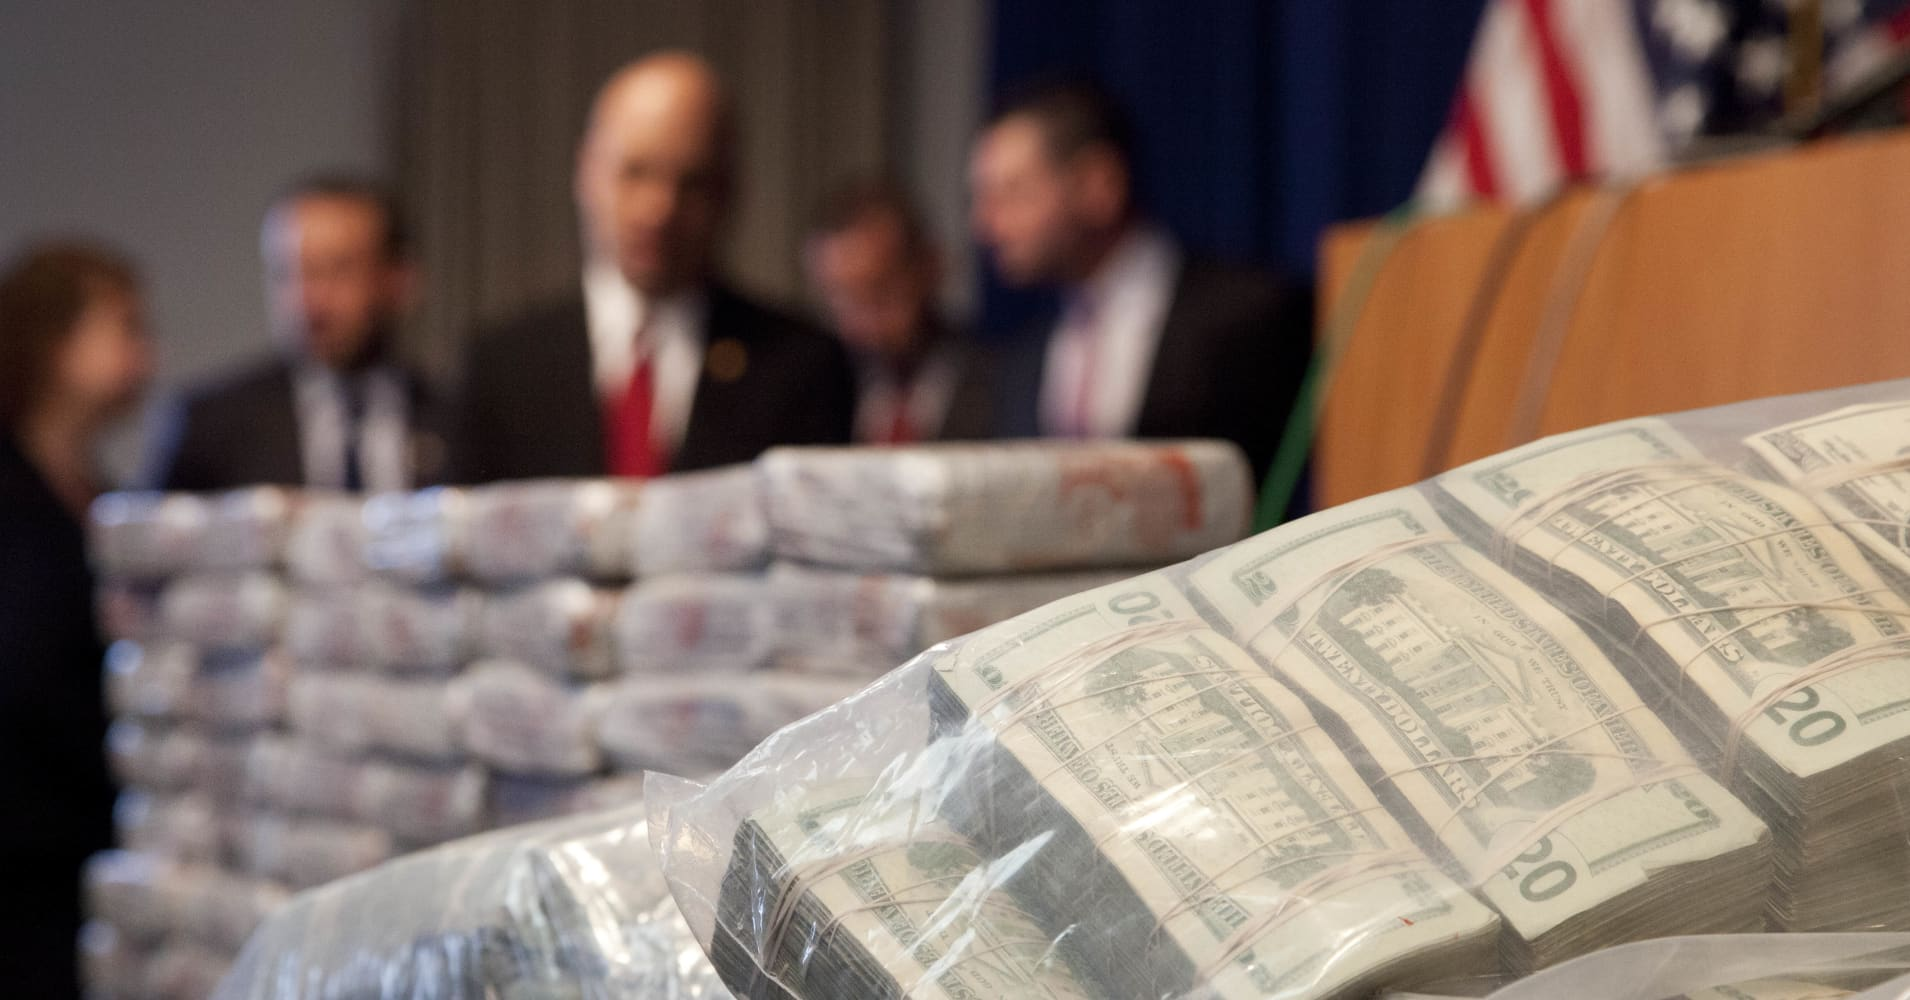 $50 In Pounds >> Authorities make record heroin bust in the Bronx